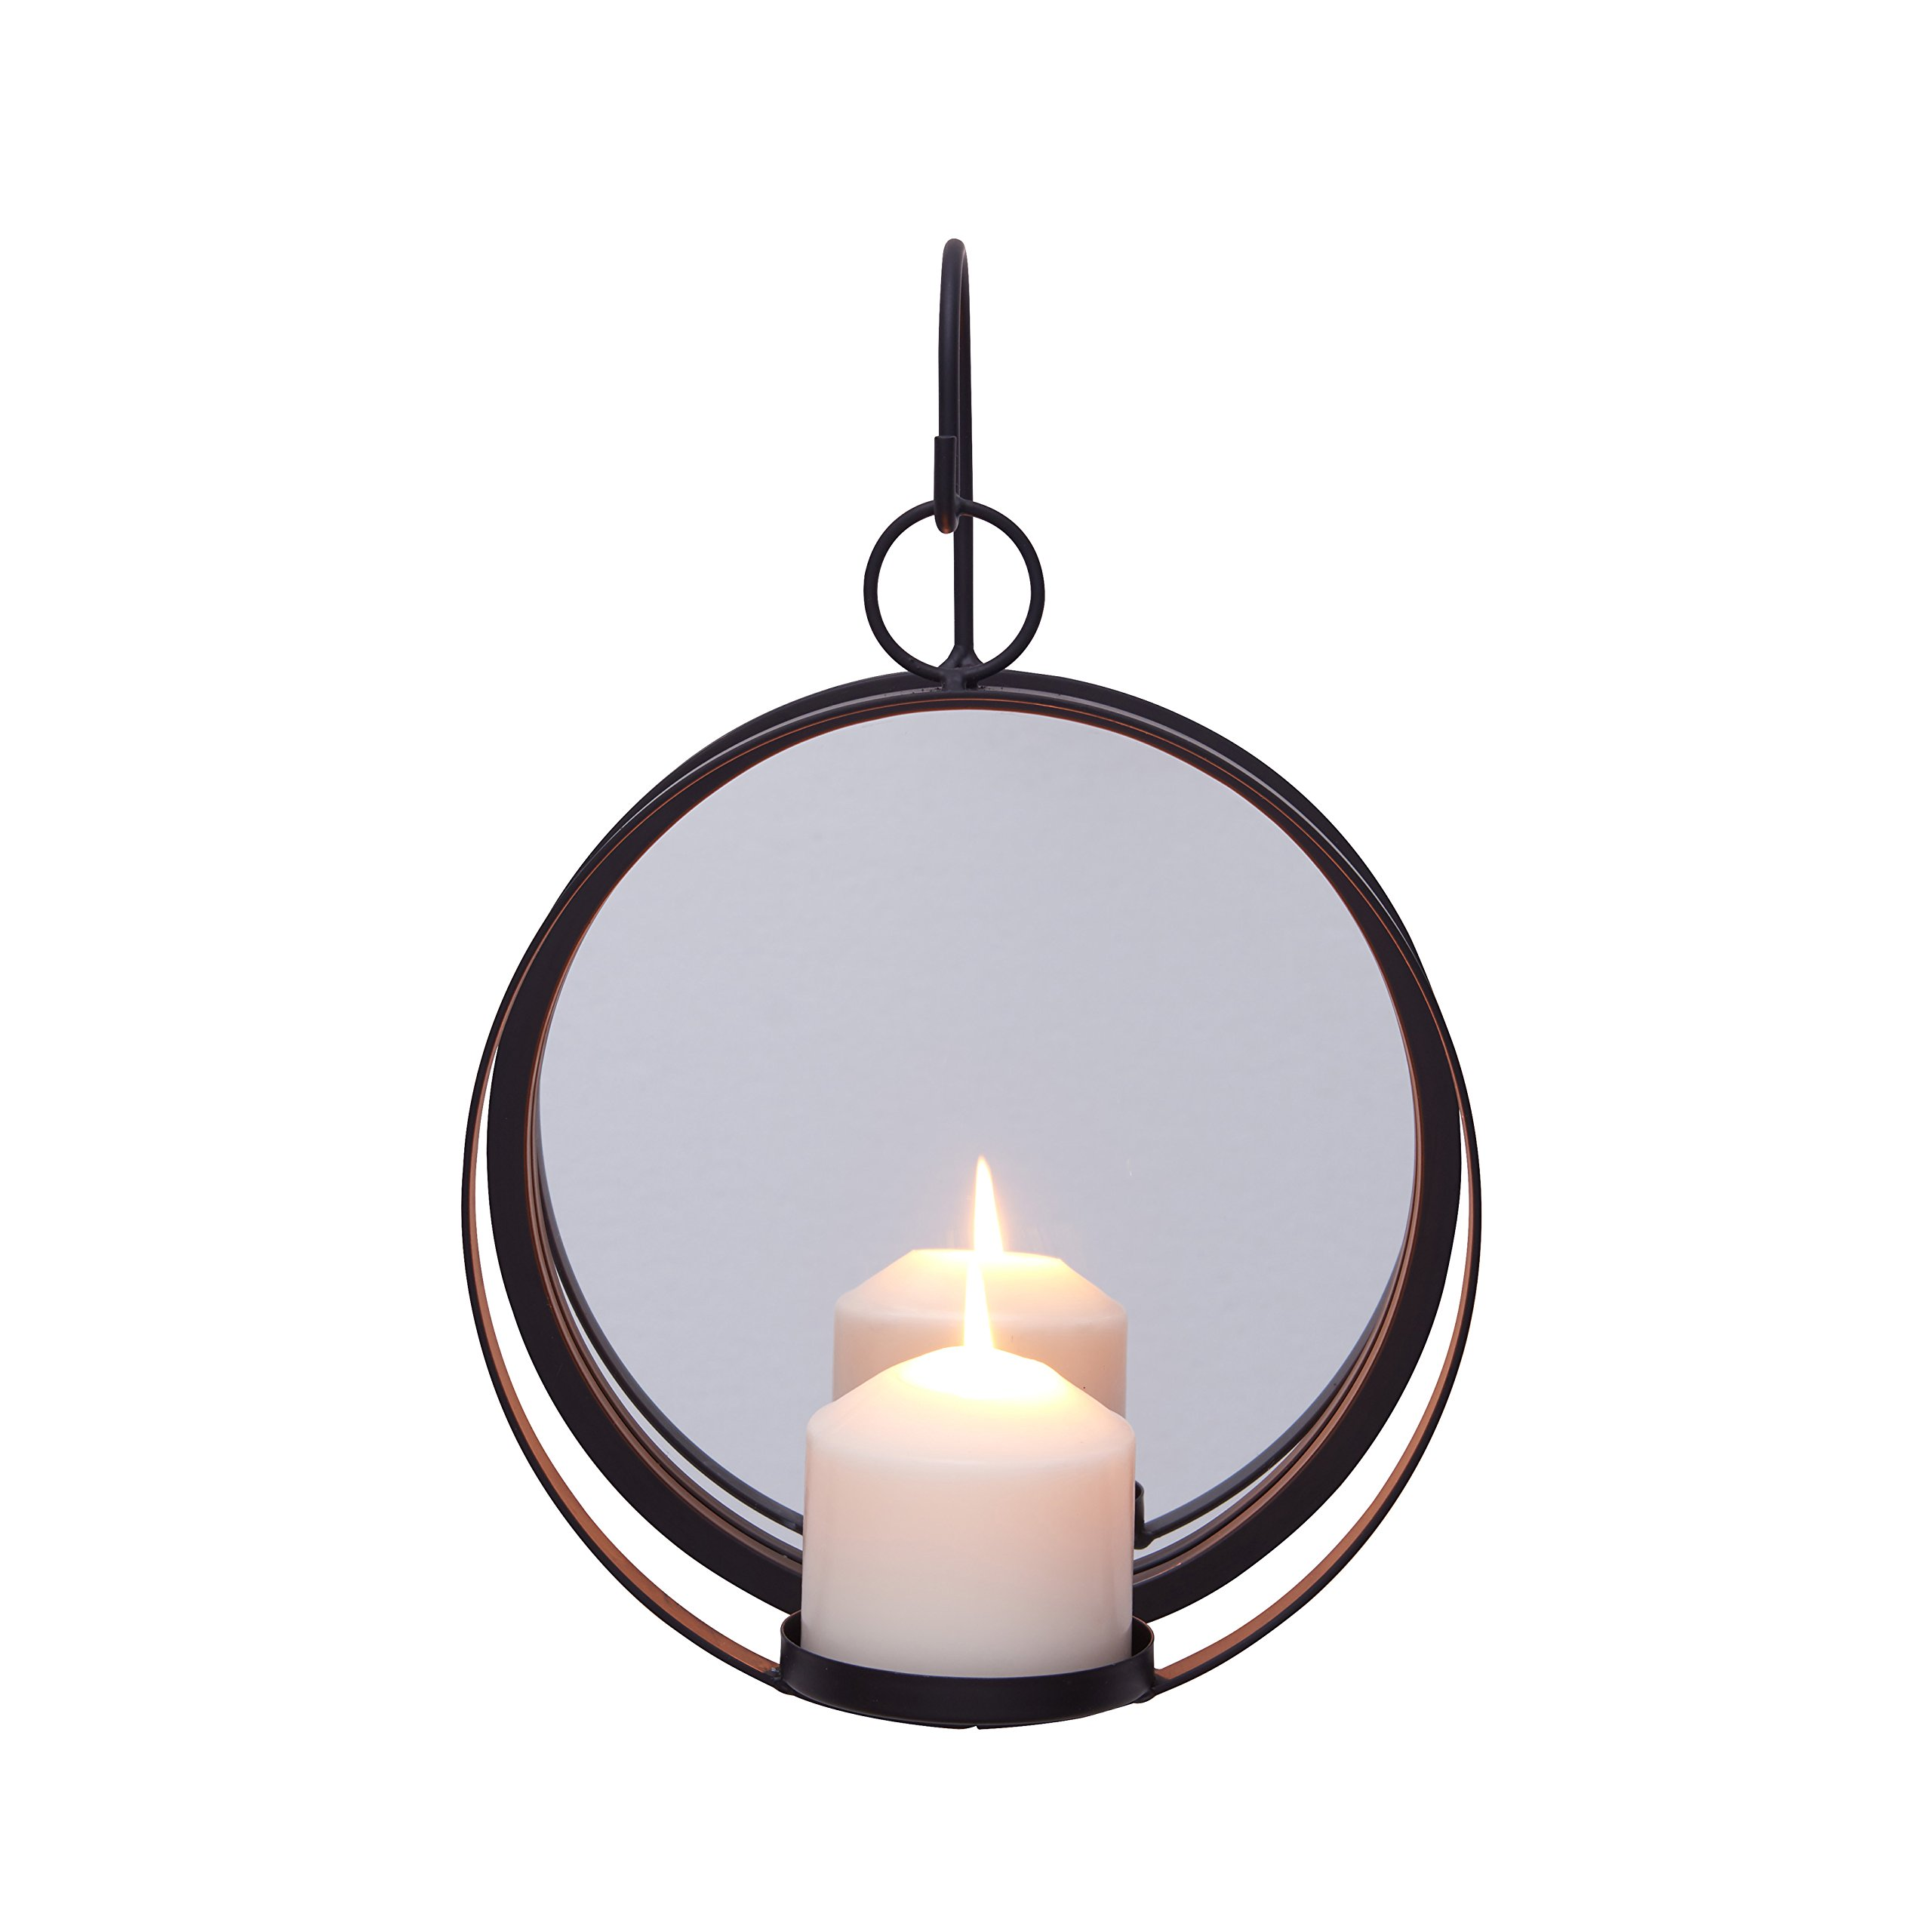 Danya B. Round Wrought Iron Pillar Candle Sconce with Mirror - A Decorative Rustic Metal Hanging Wall Candleholder